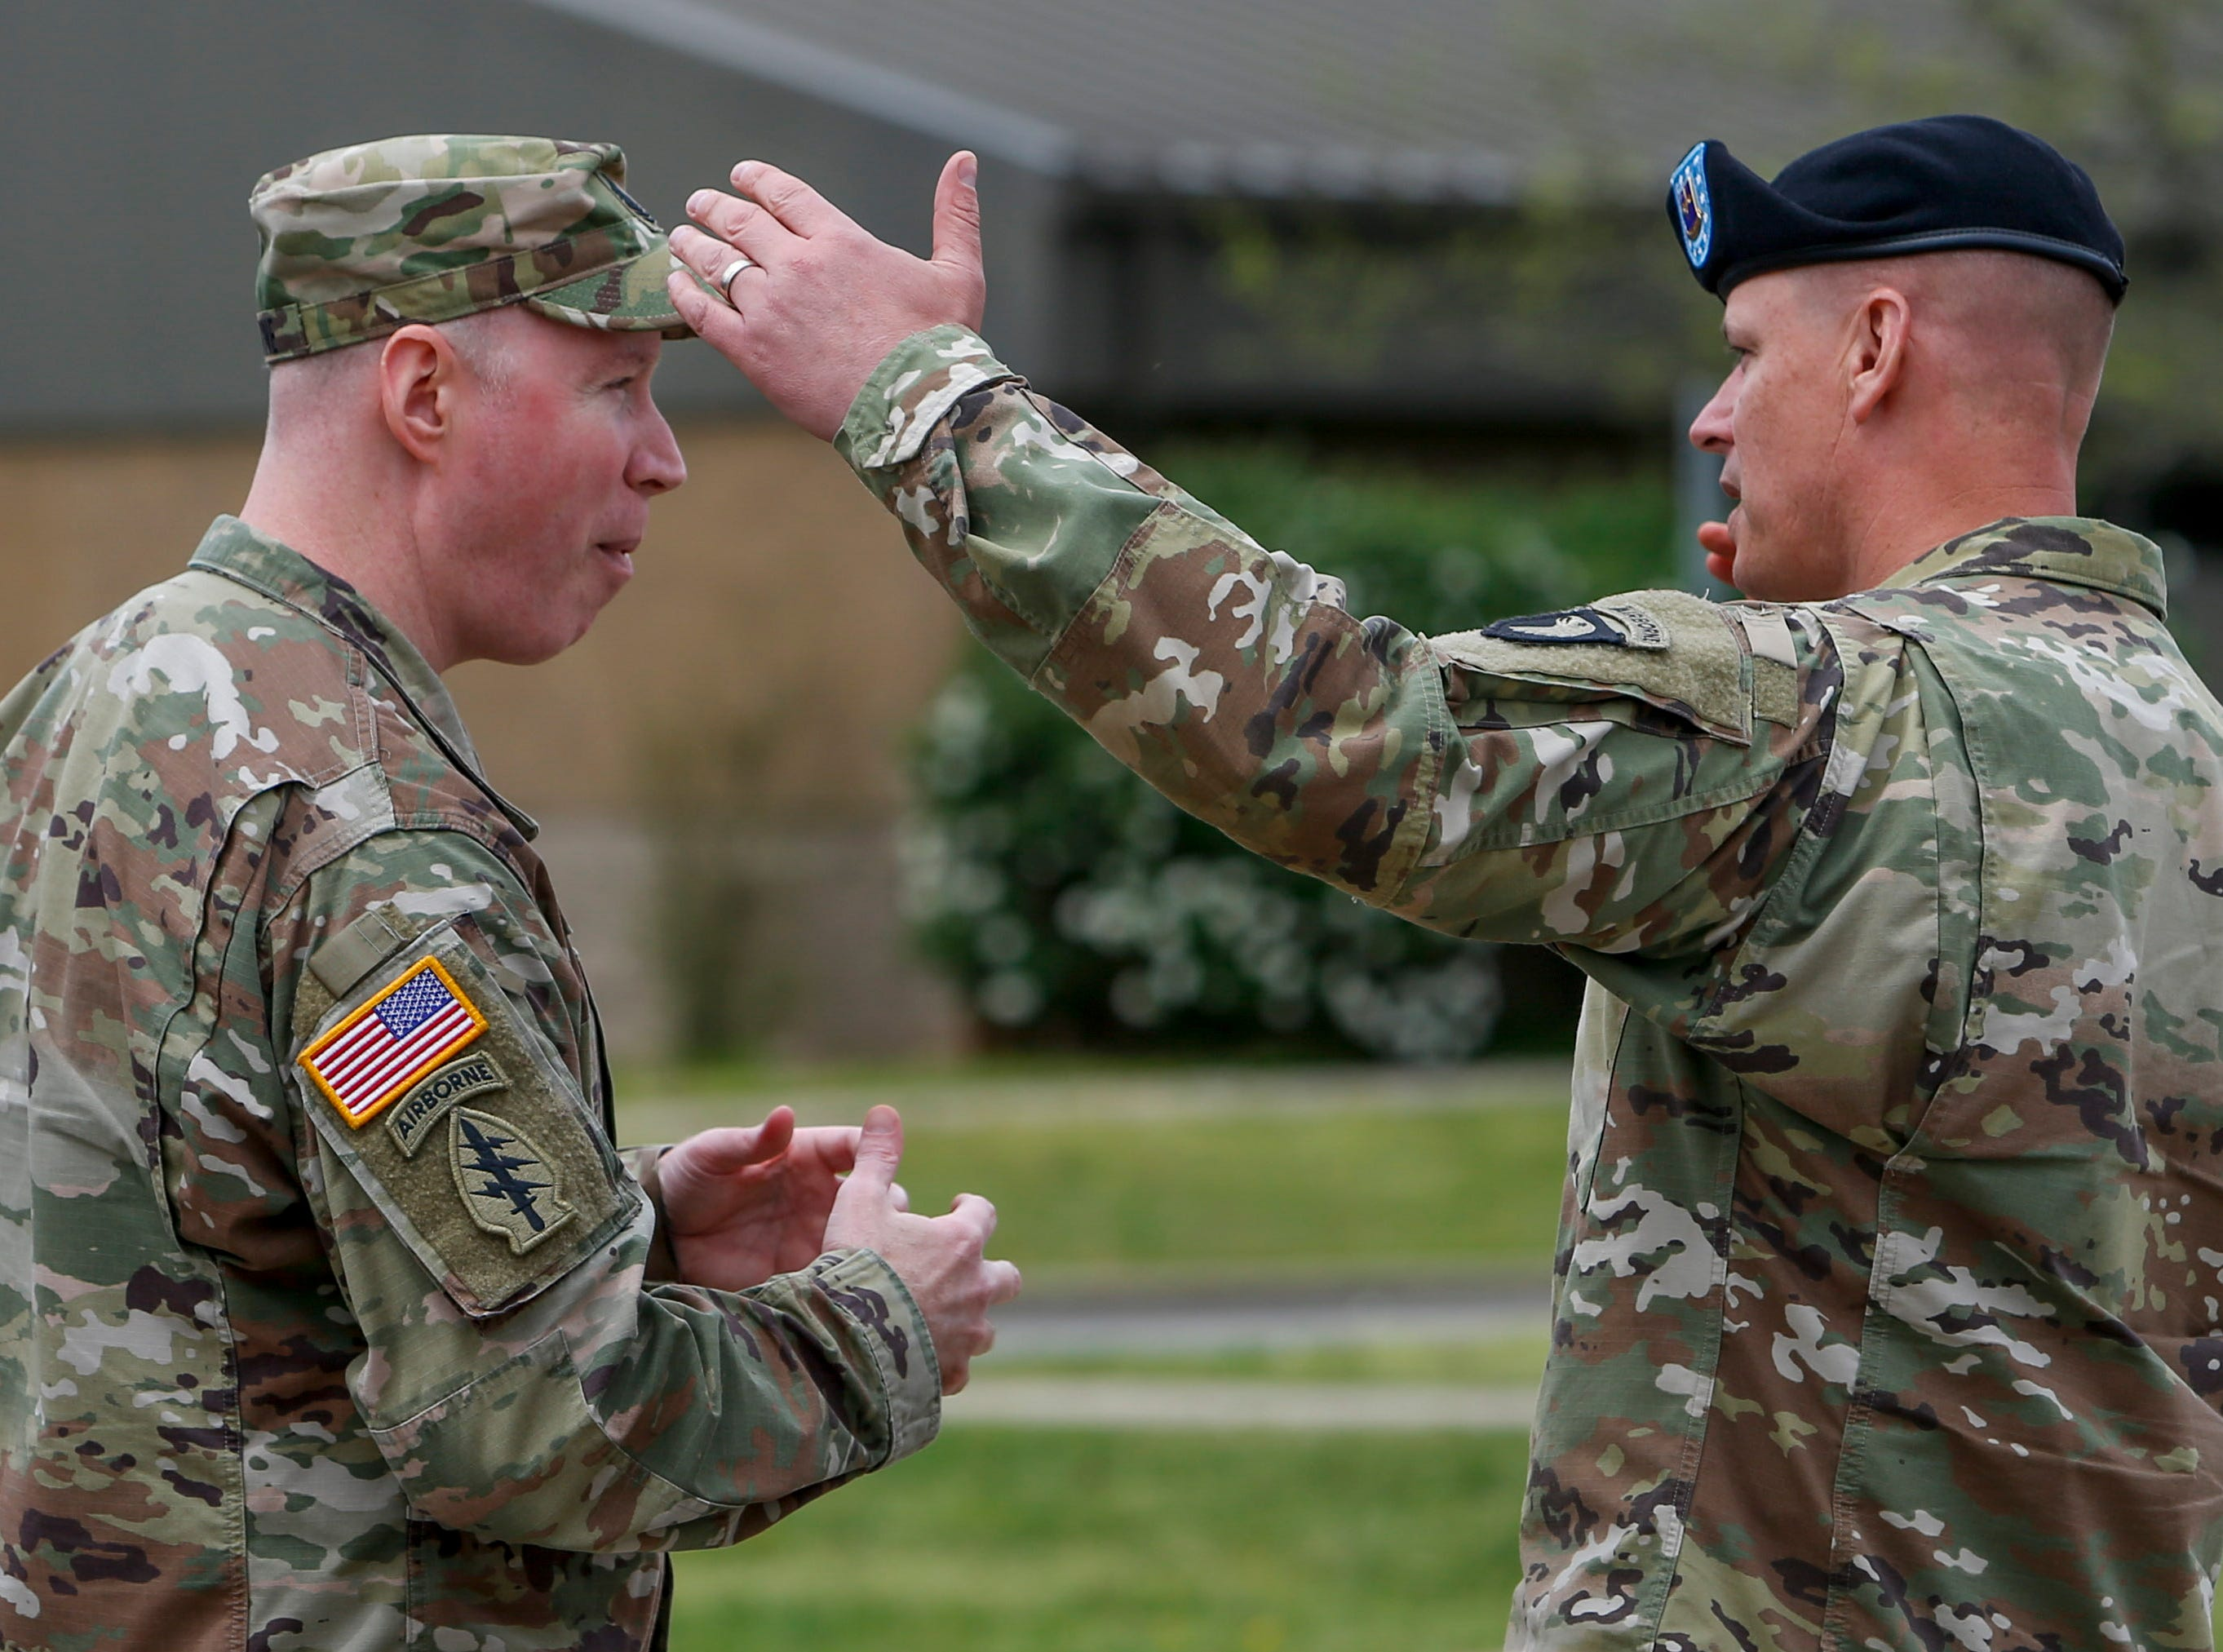 Senior non-commissioned officers speak with one another before a colors casing ceremony prior to deployment for Ukraine at 2 BCT Headquarters in Fort Campbell, KY., on Friday, April 12, 2019.